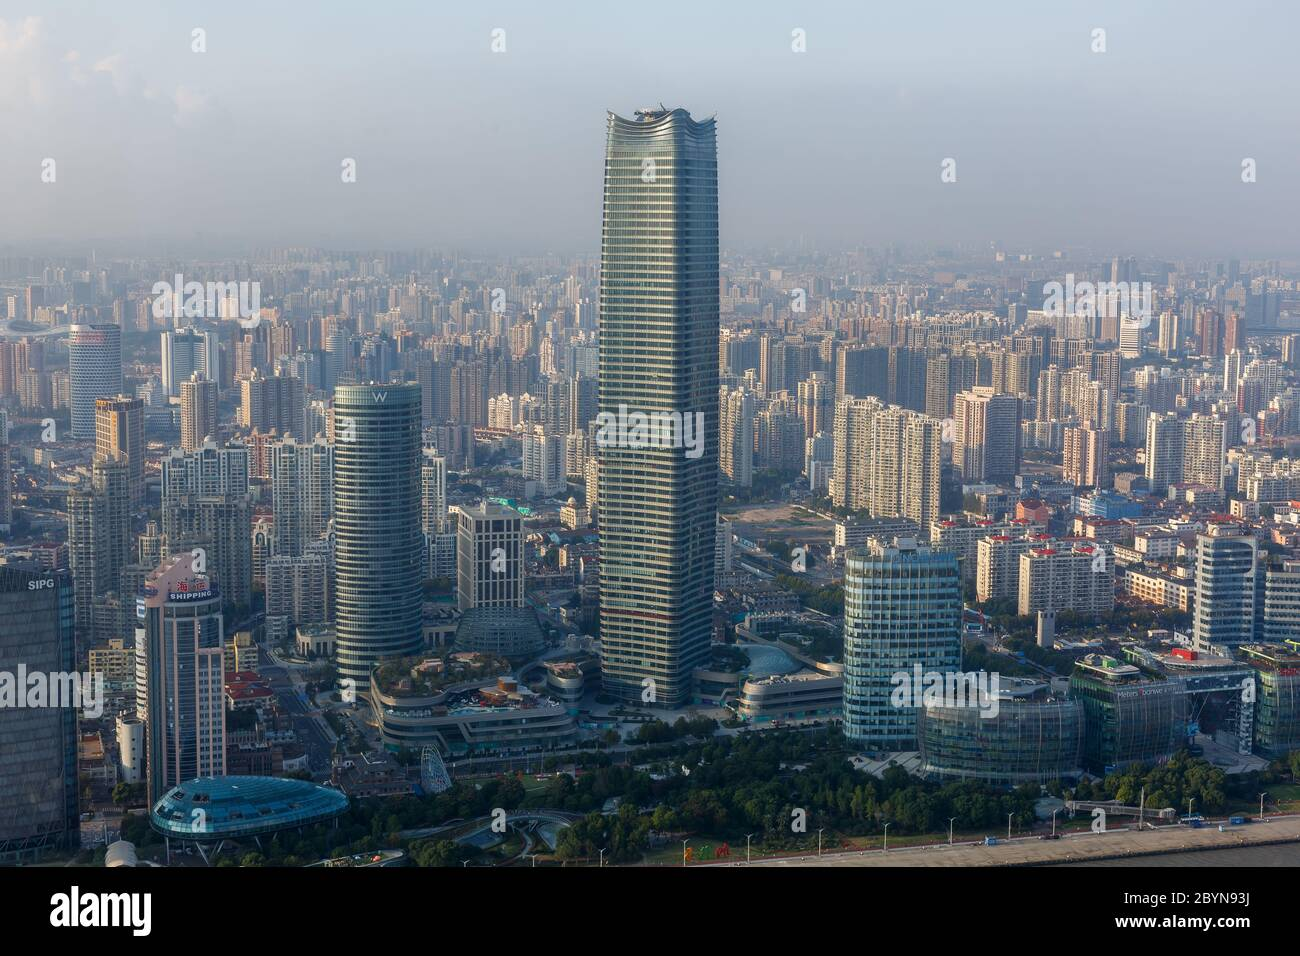 View on Jinguang Xinwaitan Tower. Close to Huangpu River. The building with the W is the W Shanghai - The Bund hotel Stock Photo